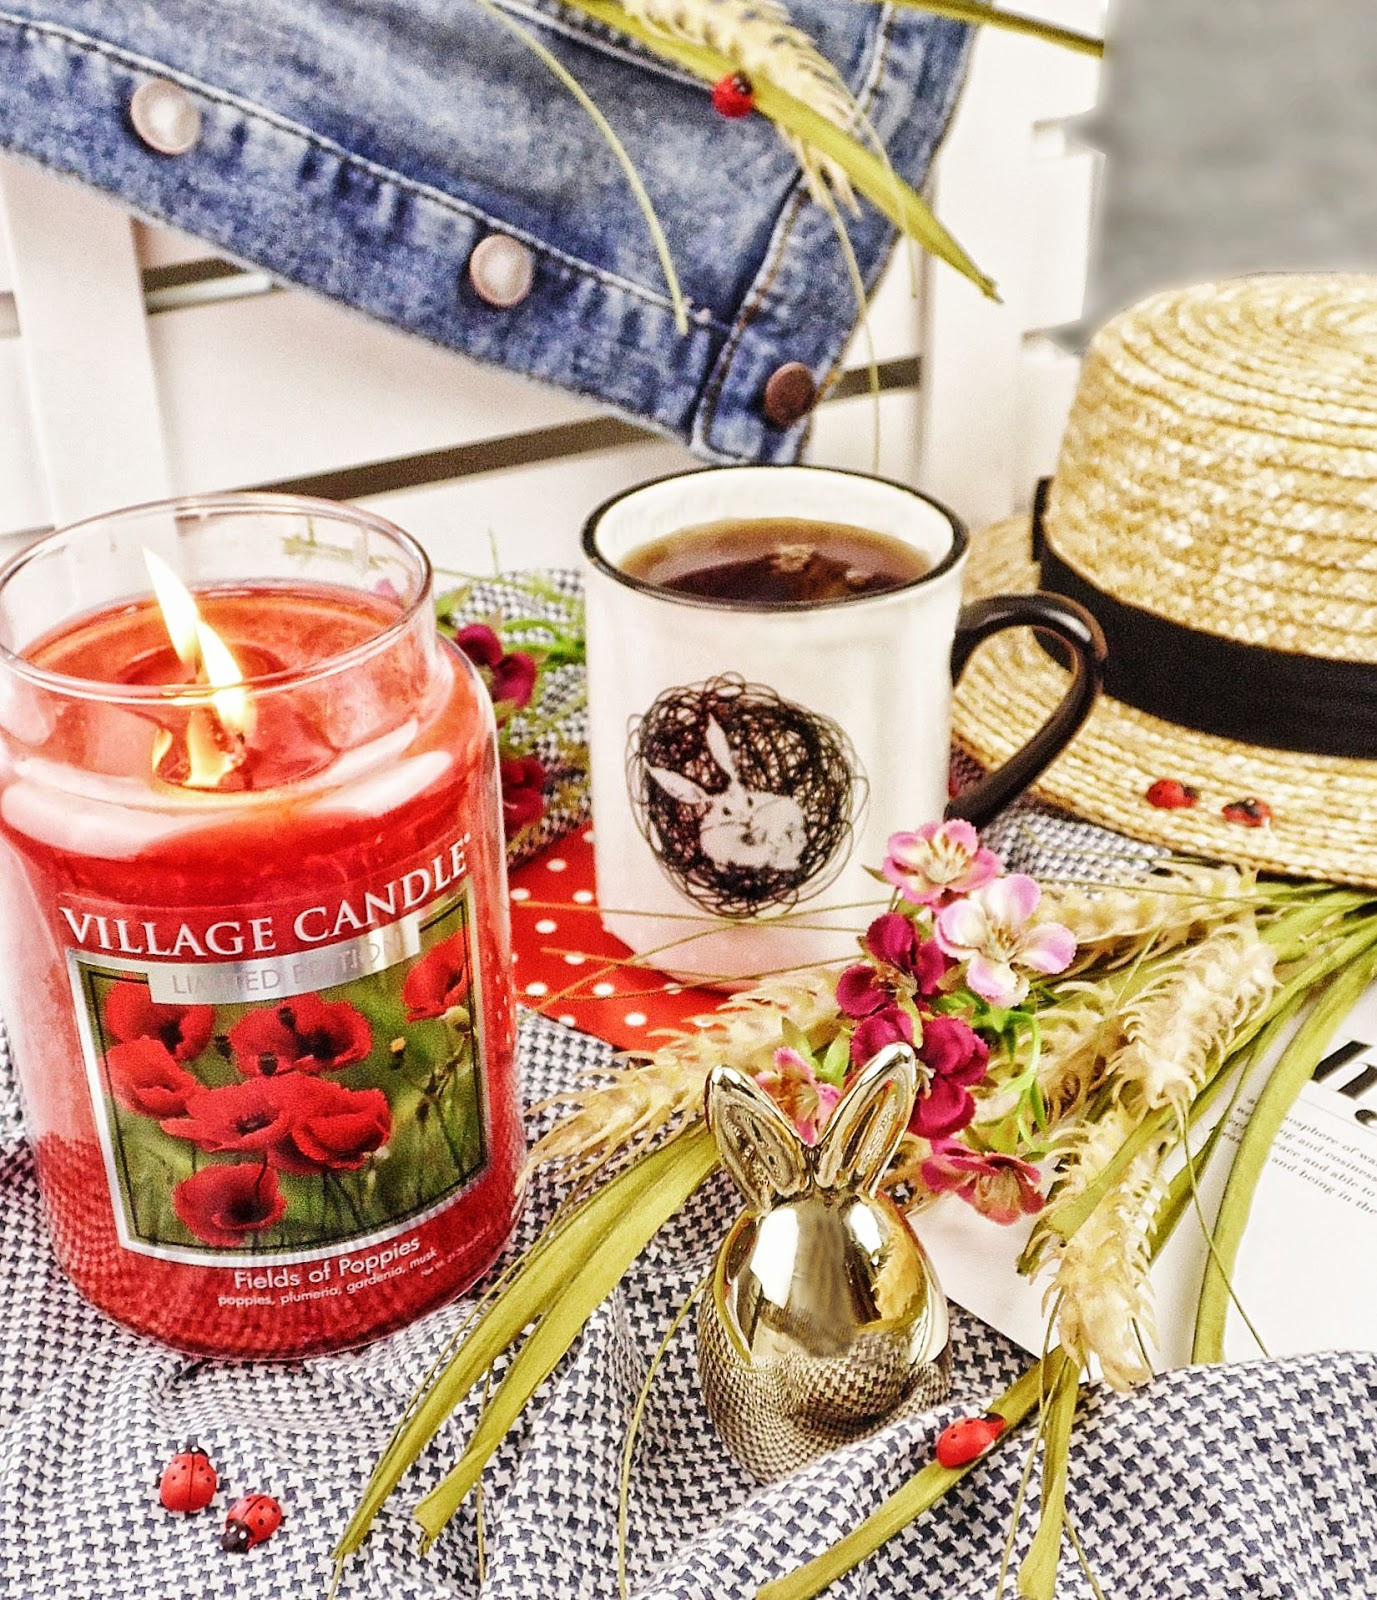 Na makowej polance - Fields of Poppies Village Candle